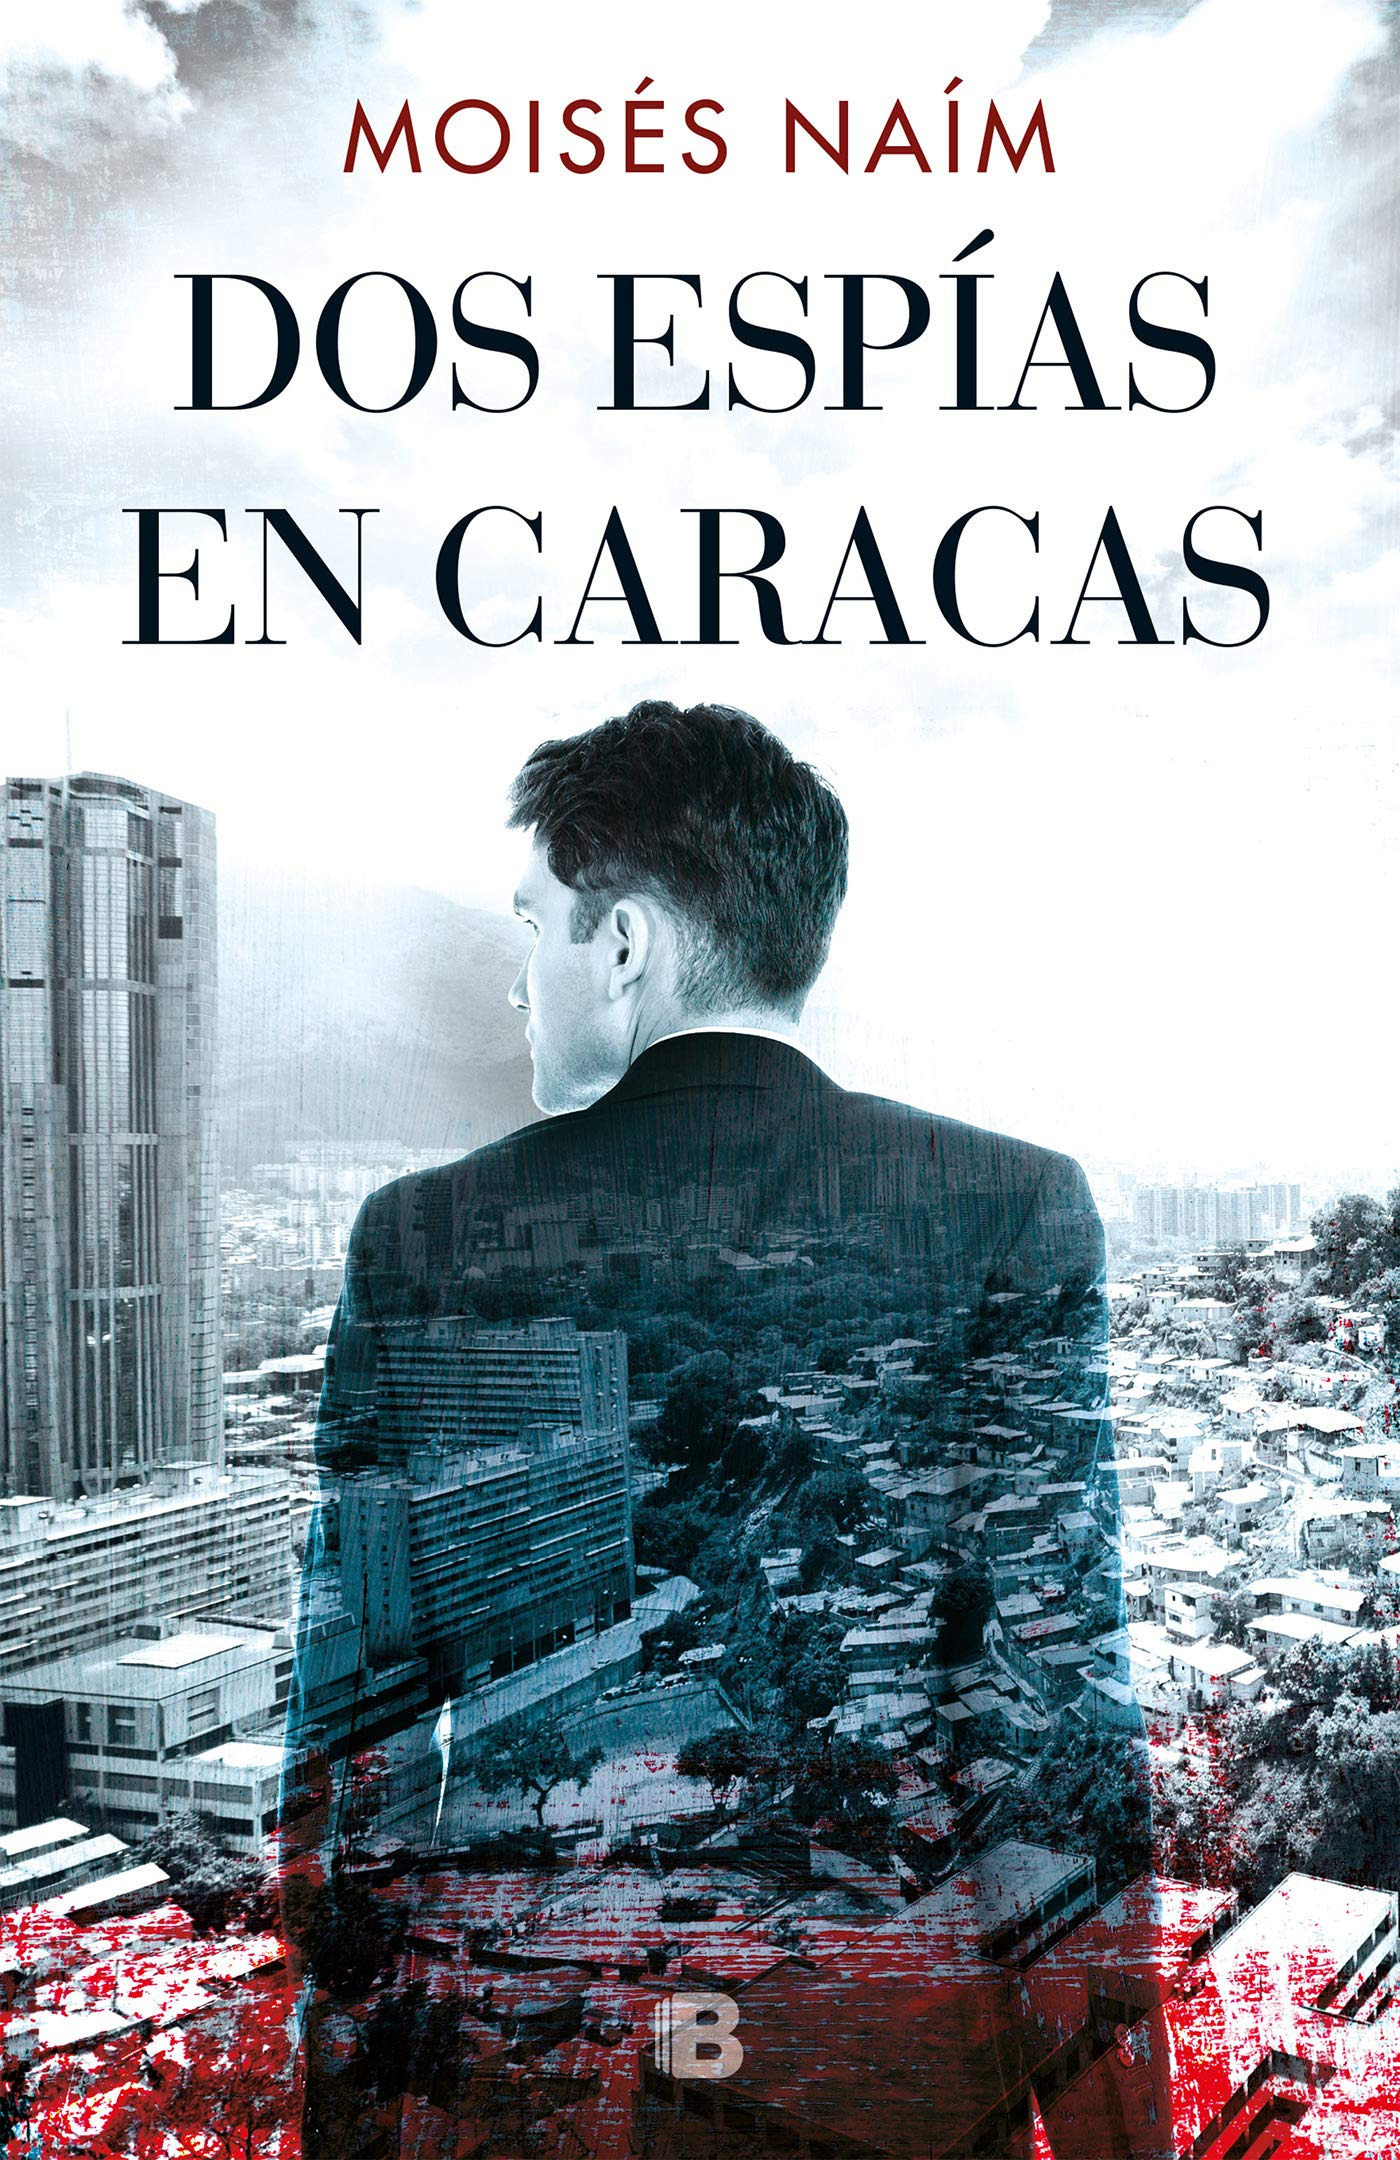 Dos espías en Caracas / Two Spies in Caracas (Spanish Edition): Moises Naim: 9788466665513: Amazon.com: Books